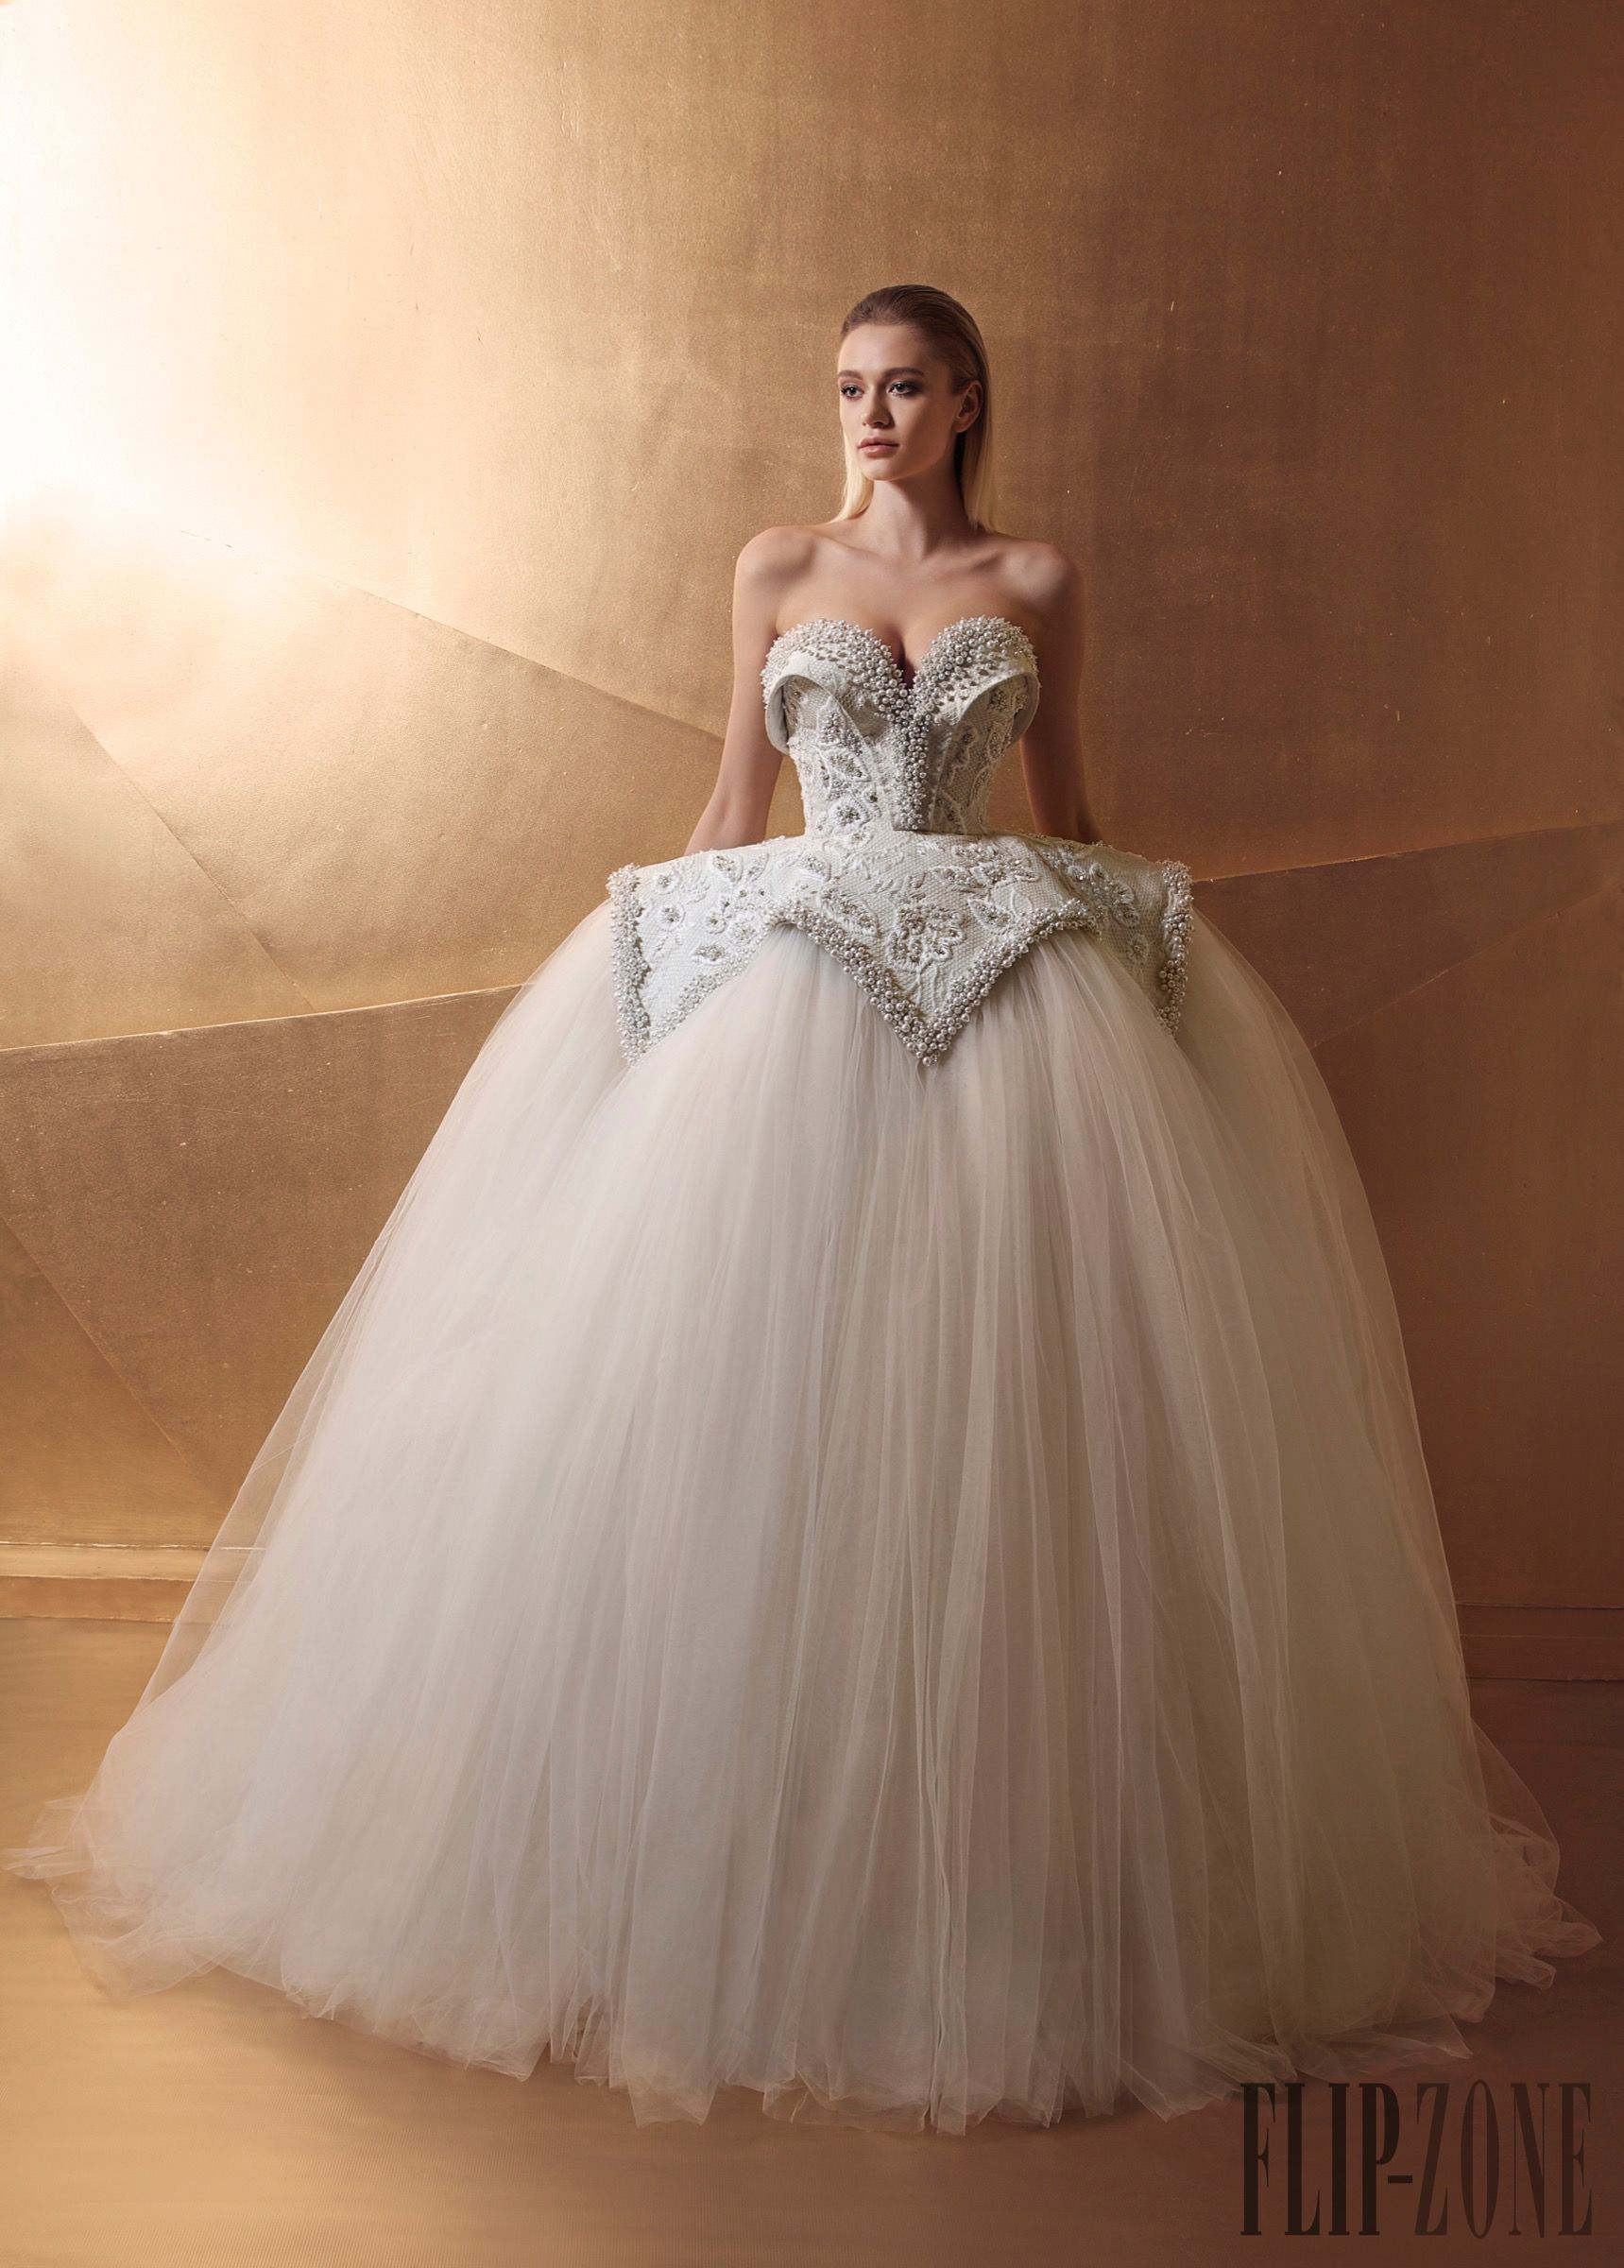 Maison Lilly and Billy Spring-summer 2016 - Bridal - http://www.flip-zone.com/Maison-Lilly-and-Billy-6015